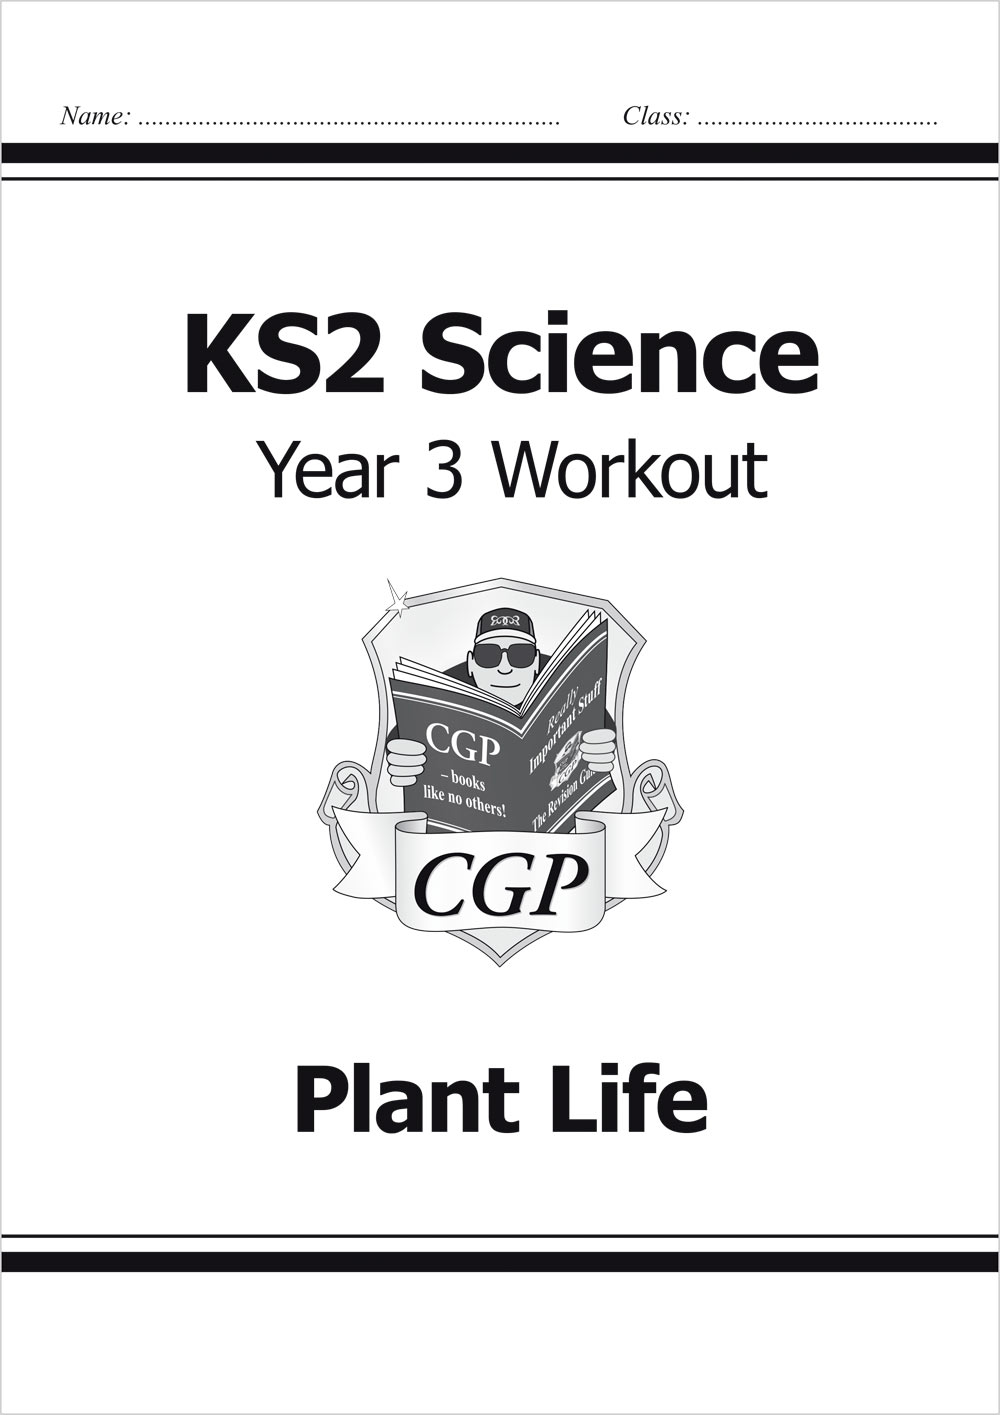 S3A22 - KS2 Science Year Three Workout: Plant Life